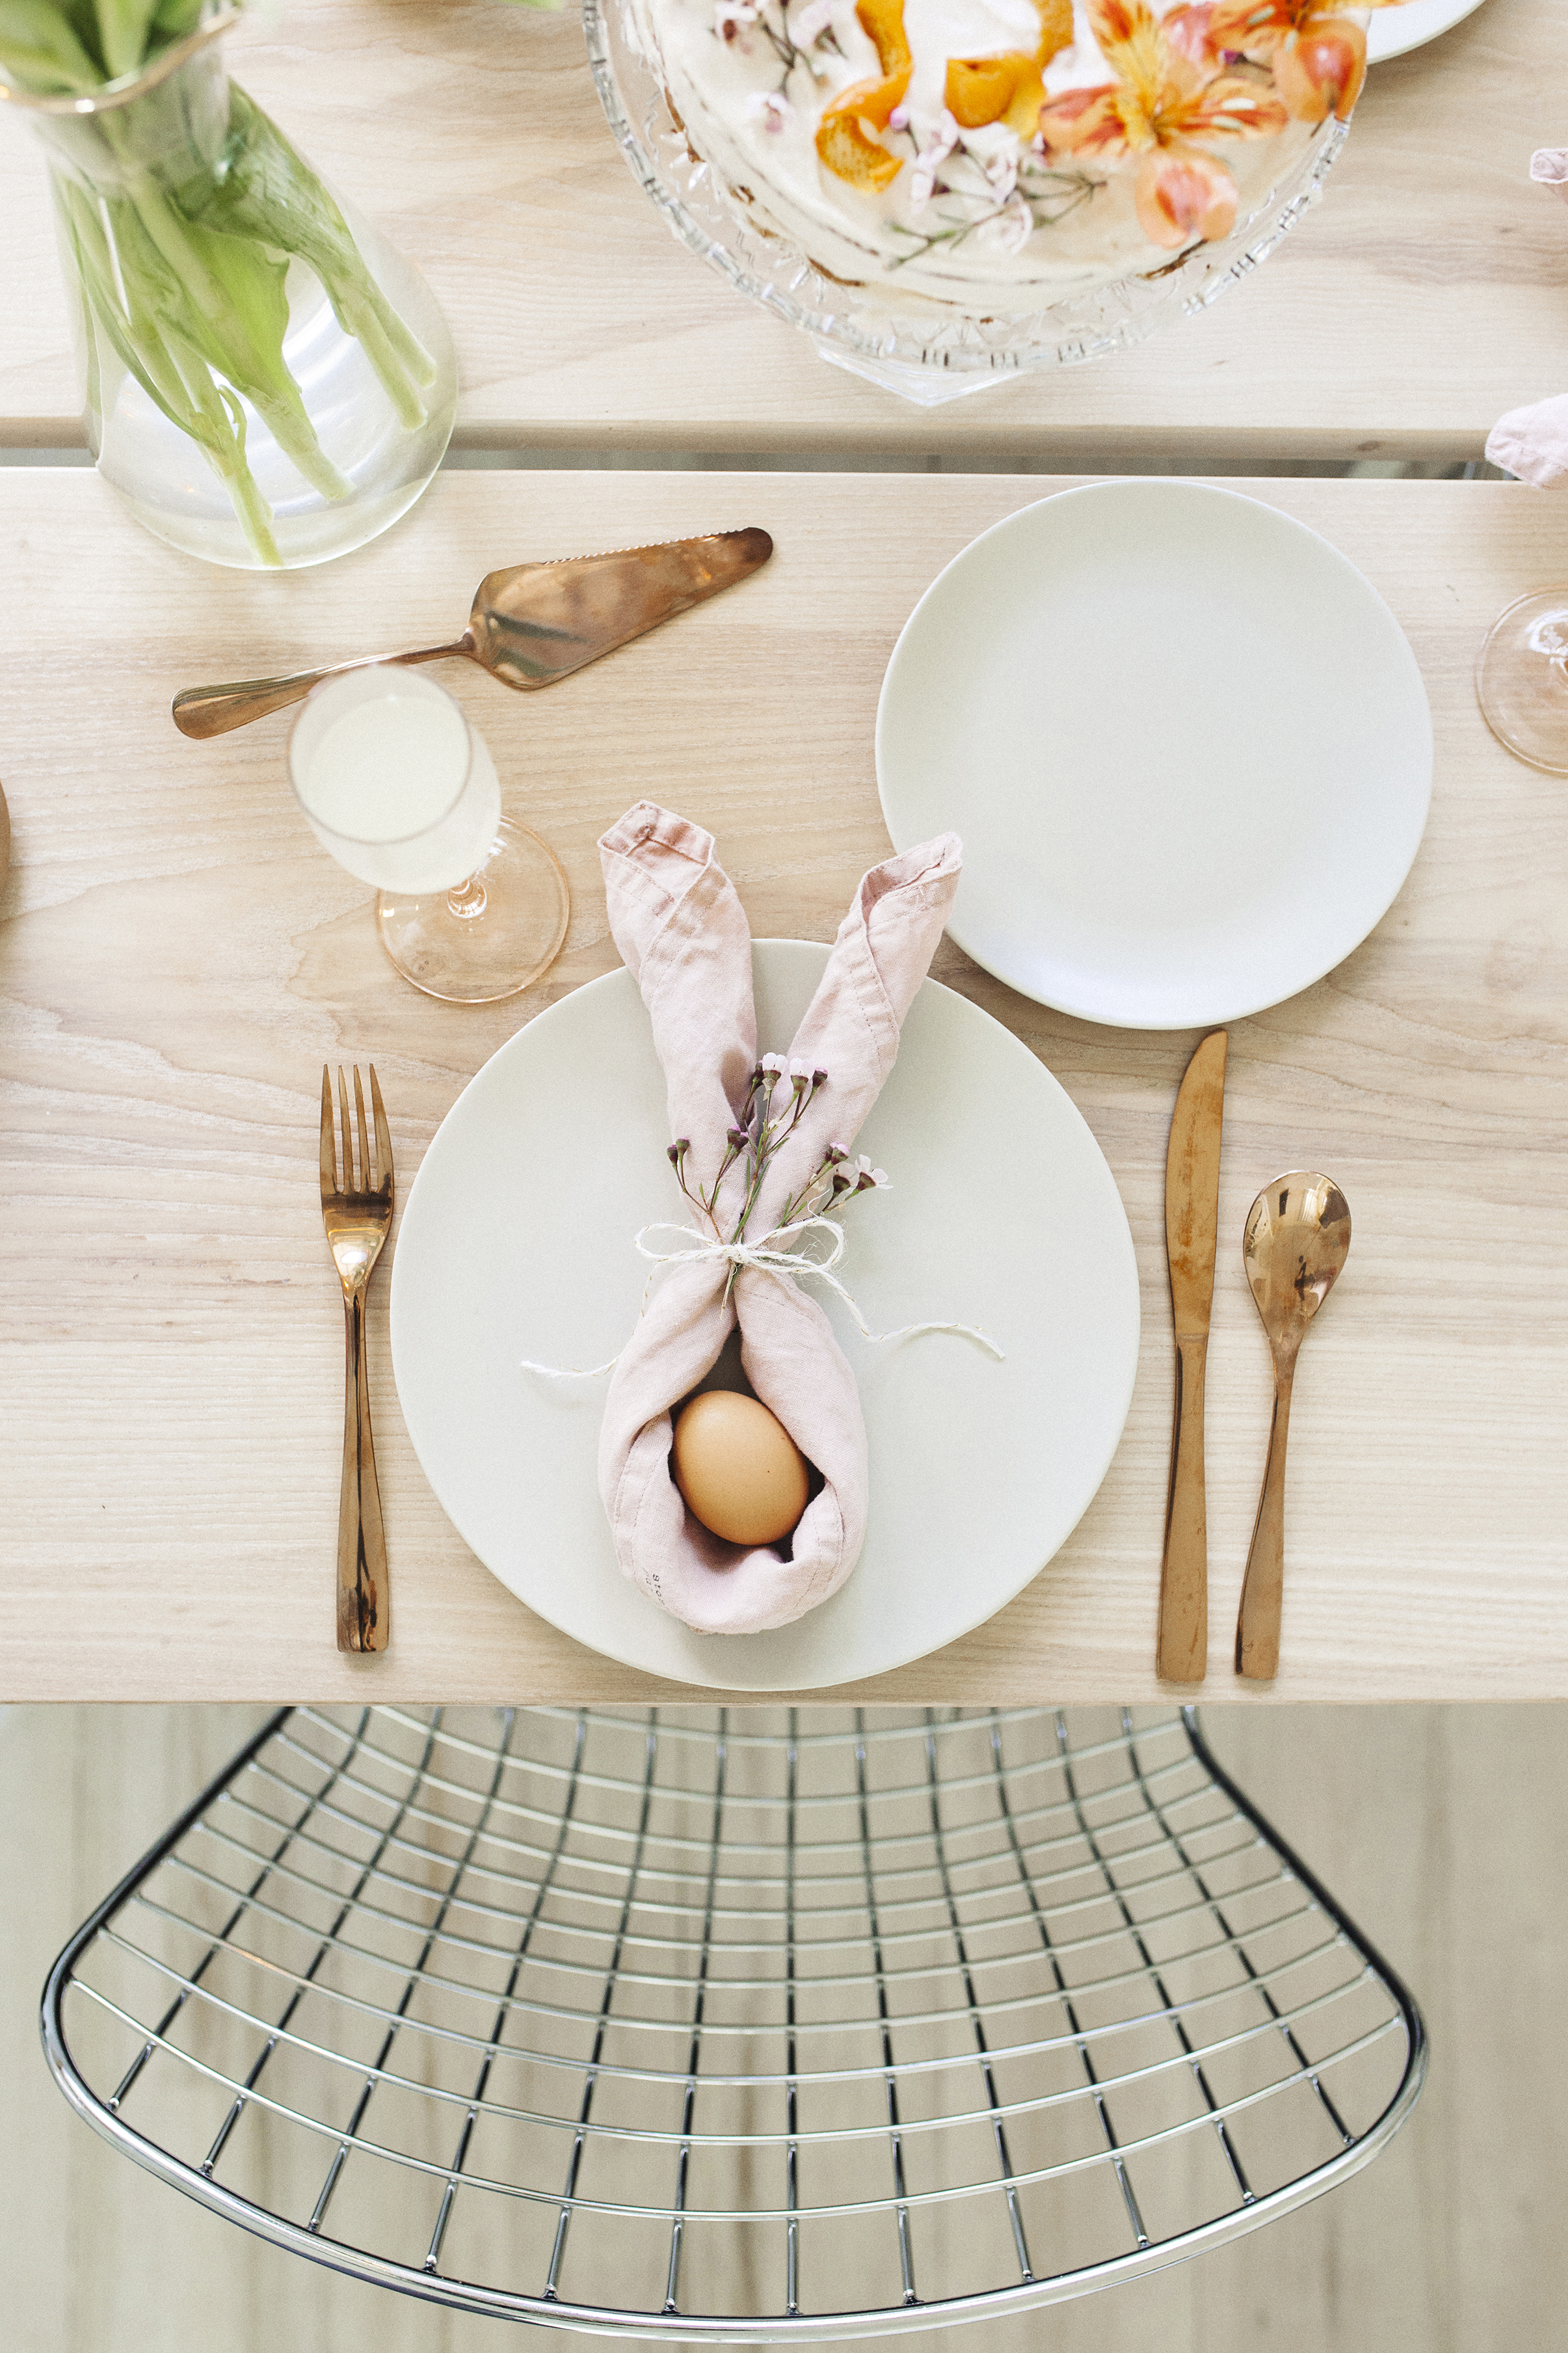 To make these 'bunny' place settings, I rolled linen napkins diagonally lengthwise (as you would with a bandana), folded the ends together and knotted a piece of gold + white baker's twine around the middle. Stick a sprig of spring flowers in the twine and finish with a bow. Place an egg in the middle and voila - you're set for an Easter brunch!